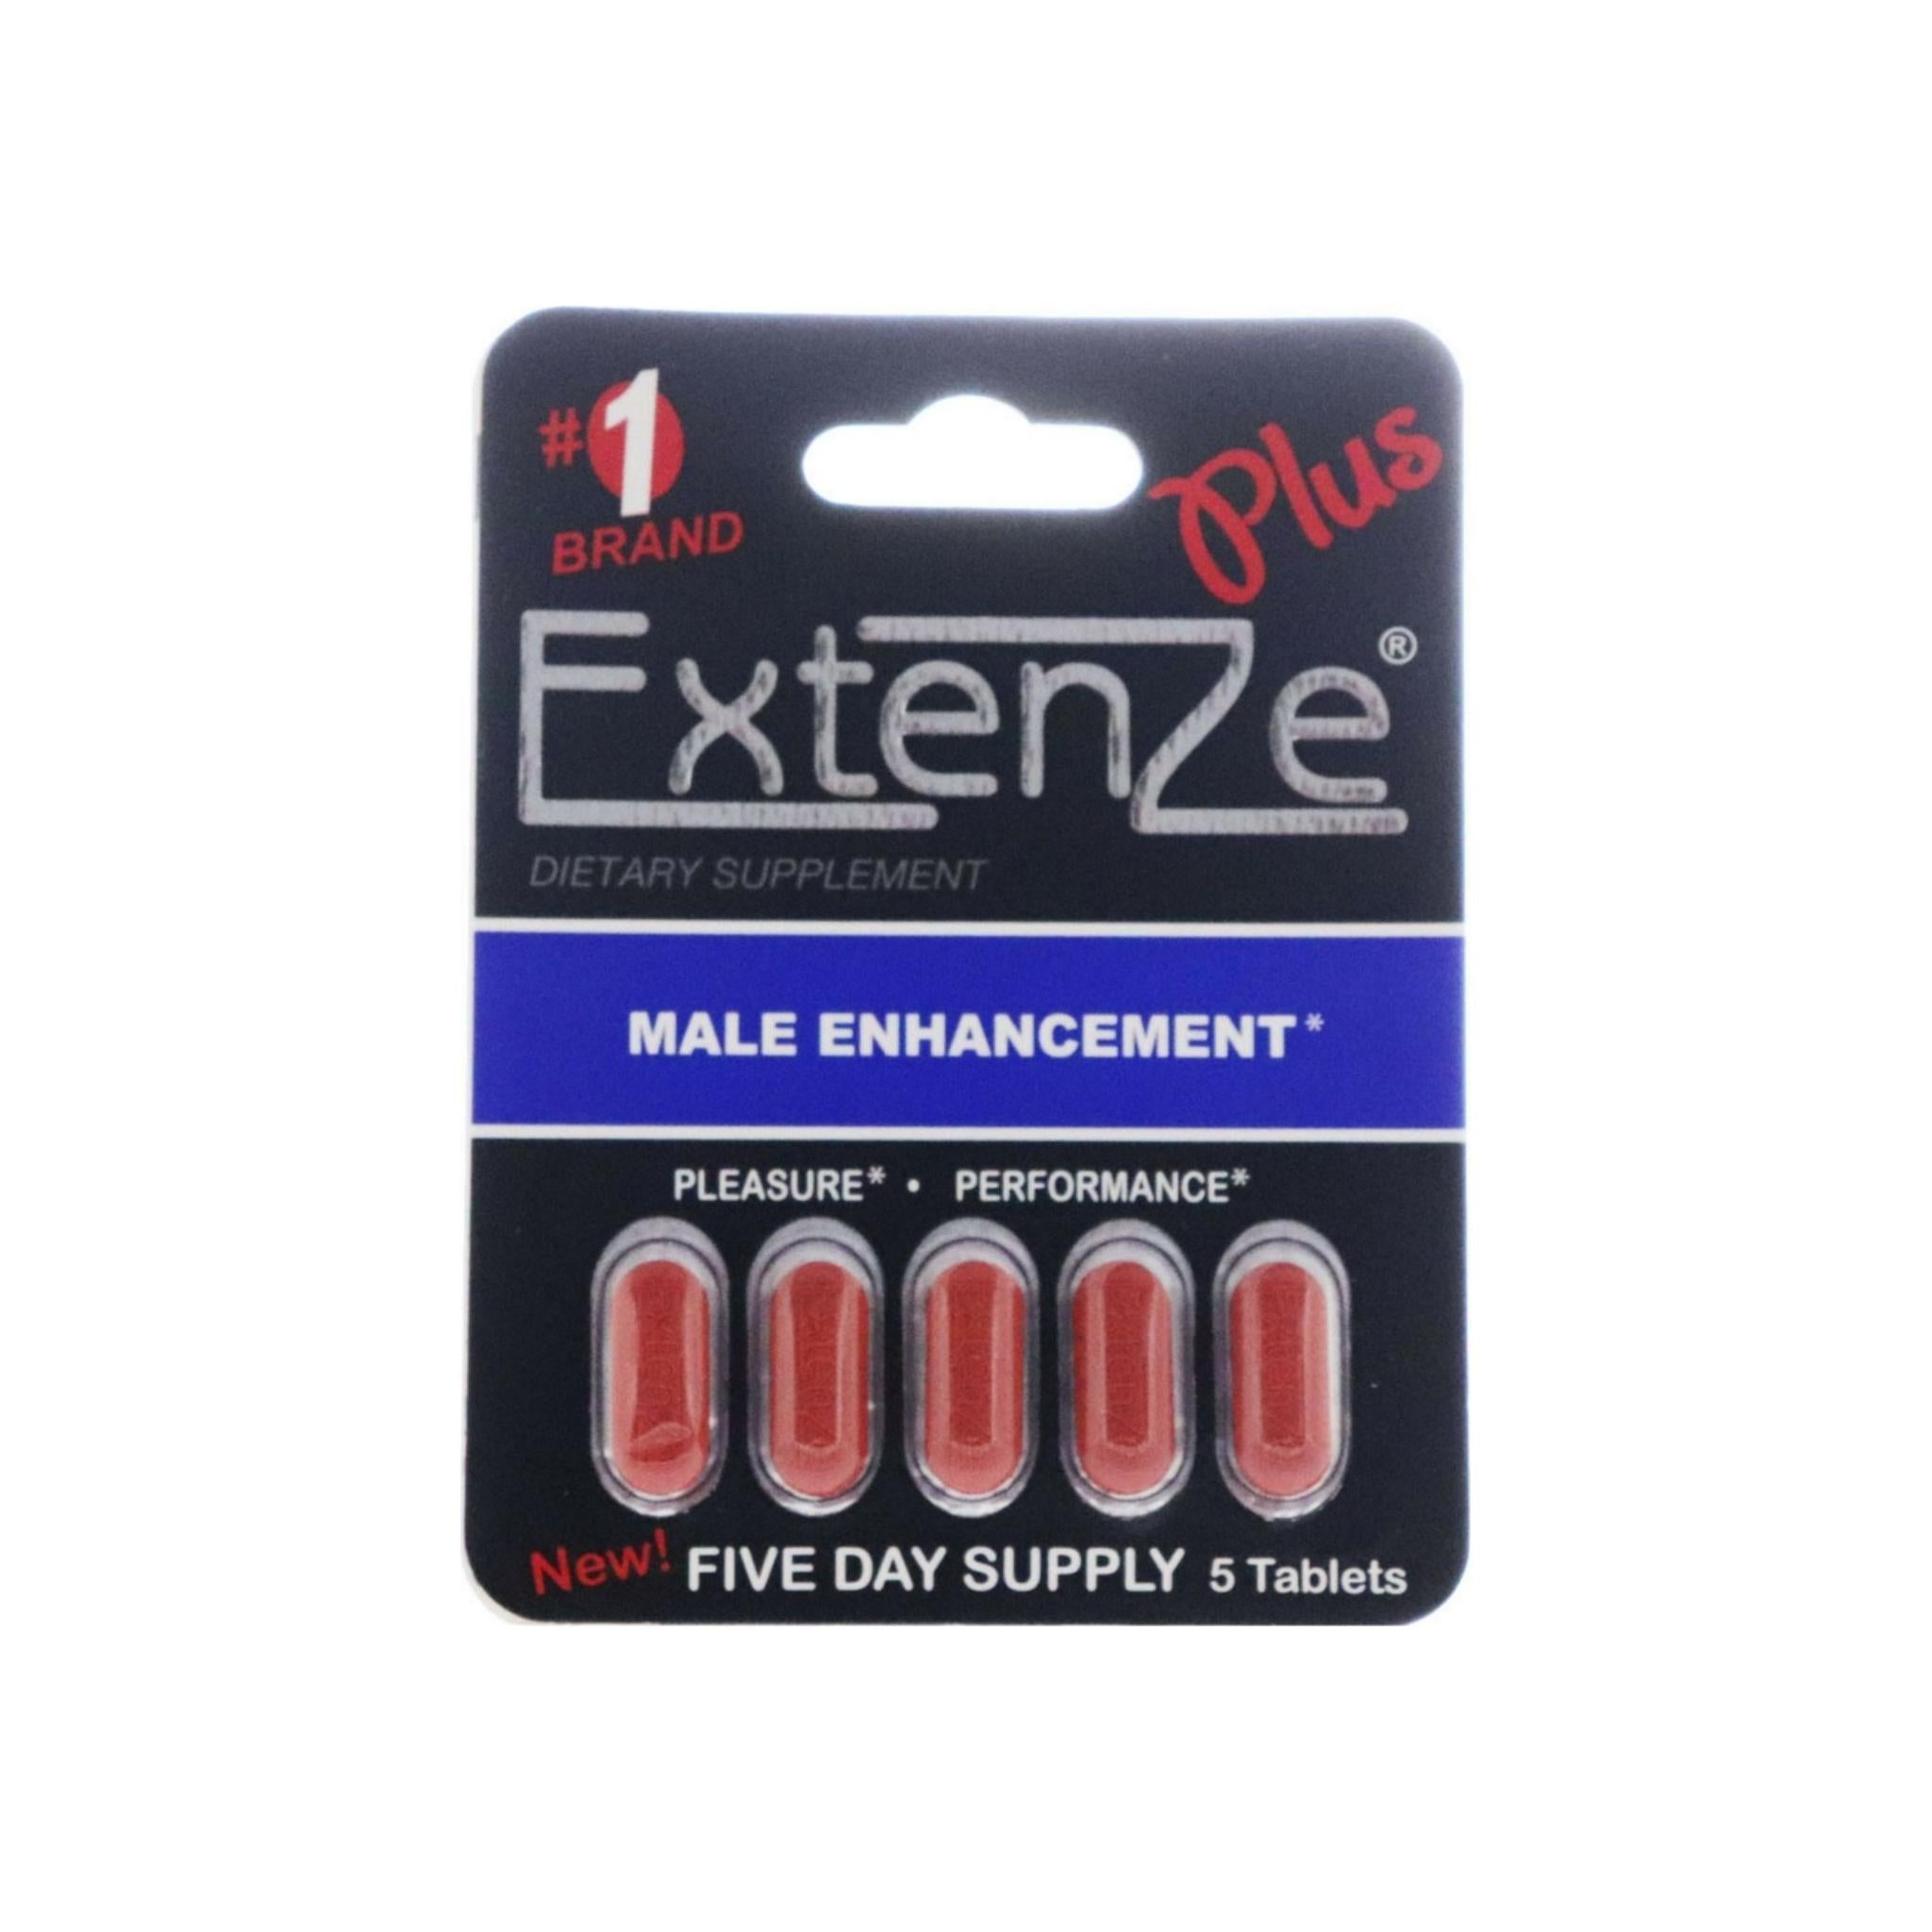 coupon 10 off 10 Extenze 2020